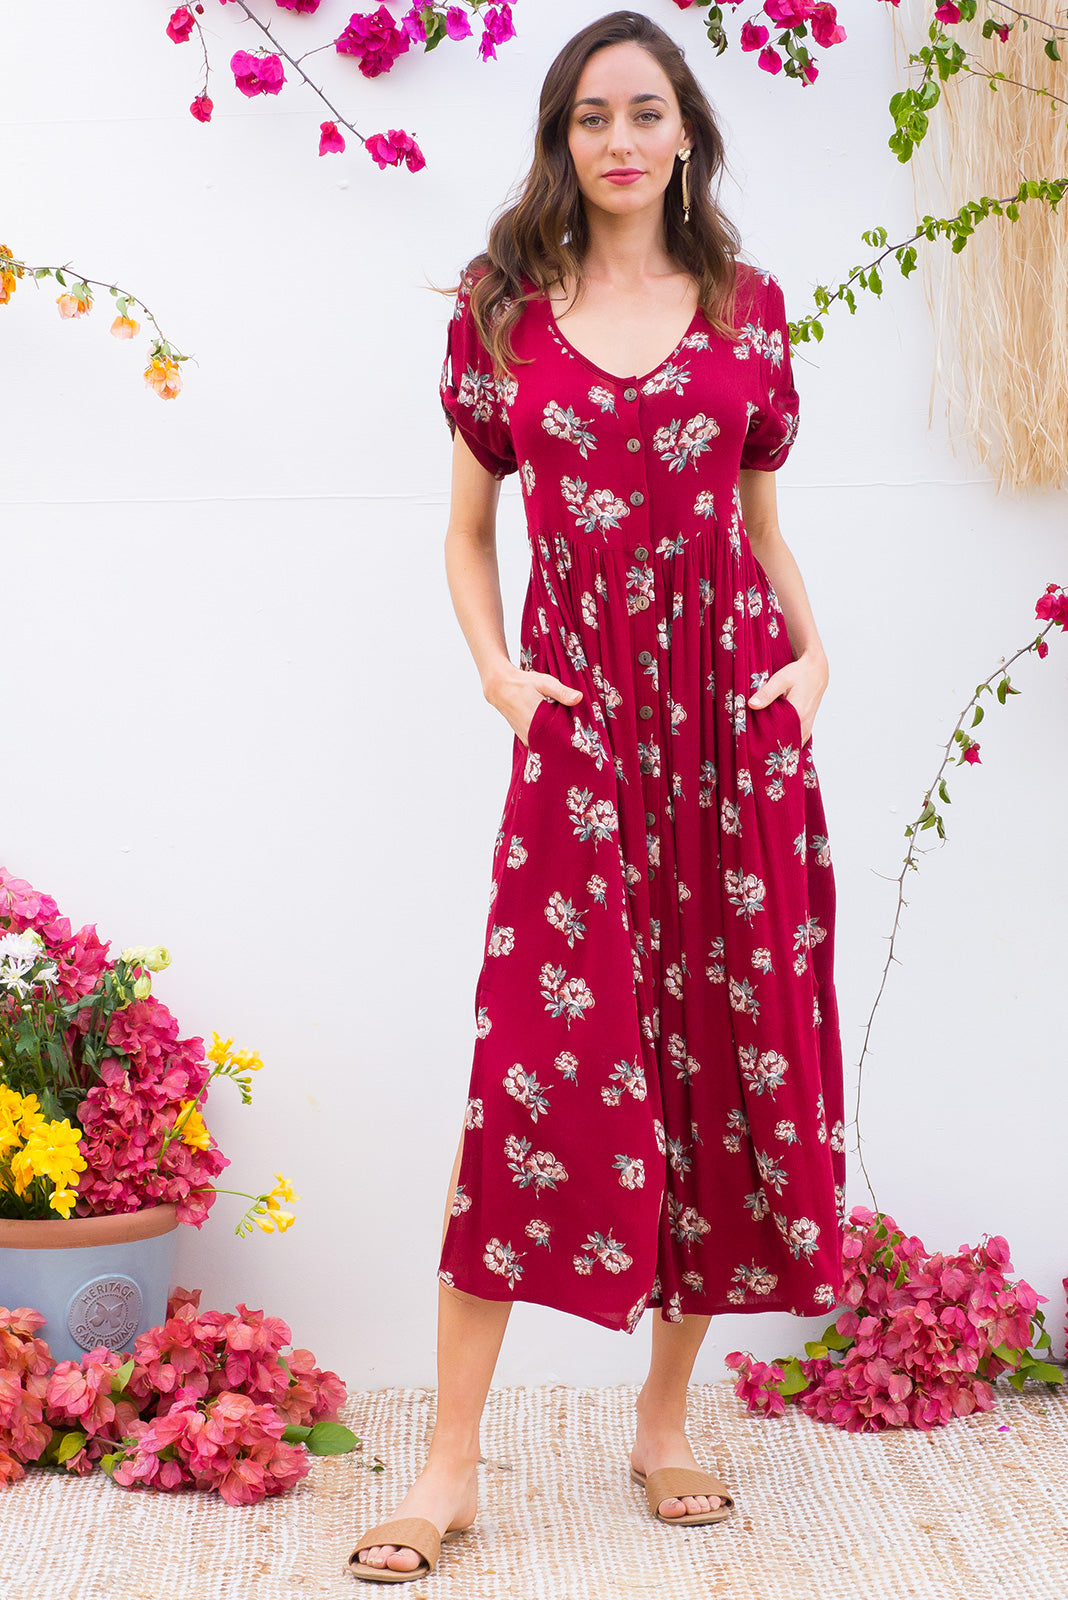 Rocco Pinot Red button front maxi dress in blood red floral print on crinkled rayon fabric